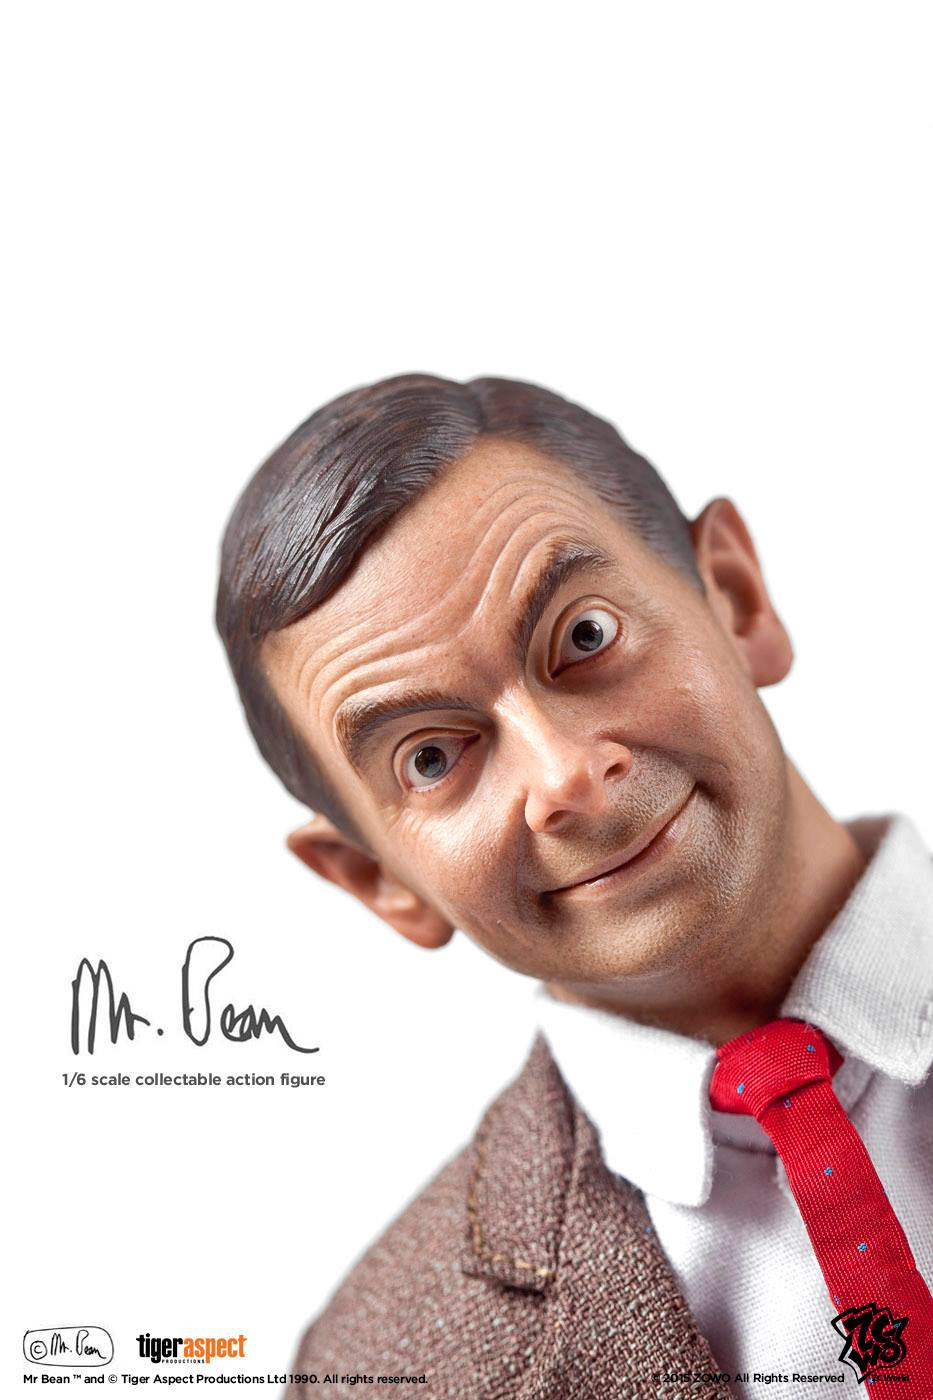 [ZCWO] Mr. Bean - 1/6 scale 150245jxnm2uhhjkvzn2h8